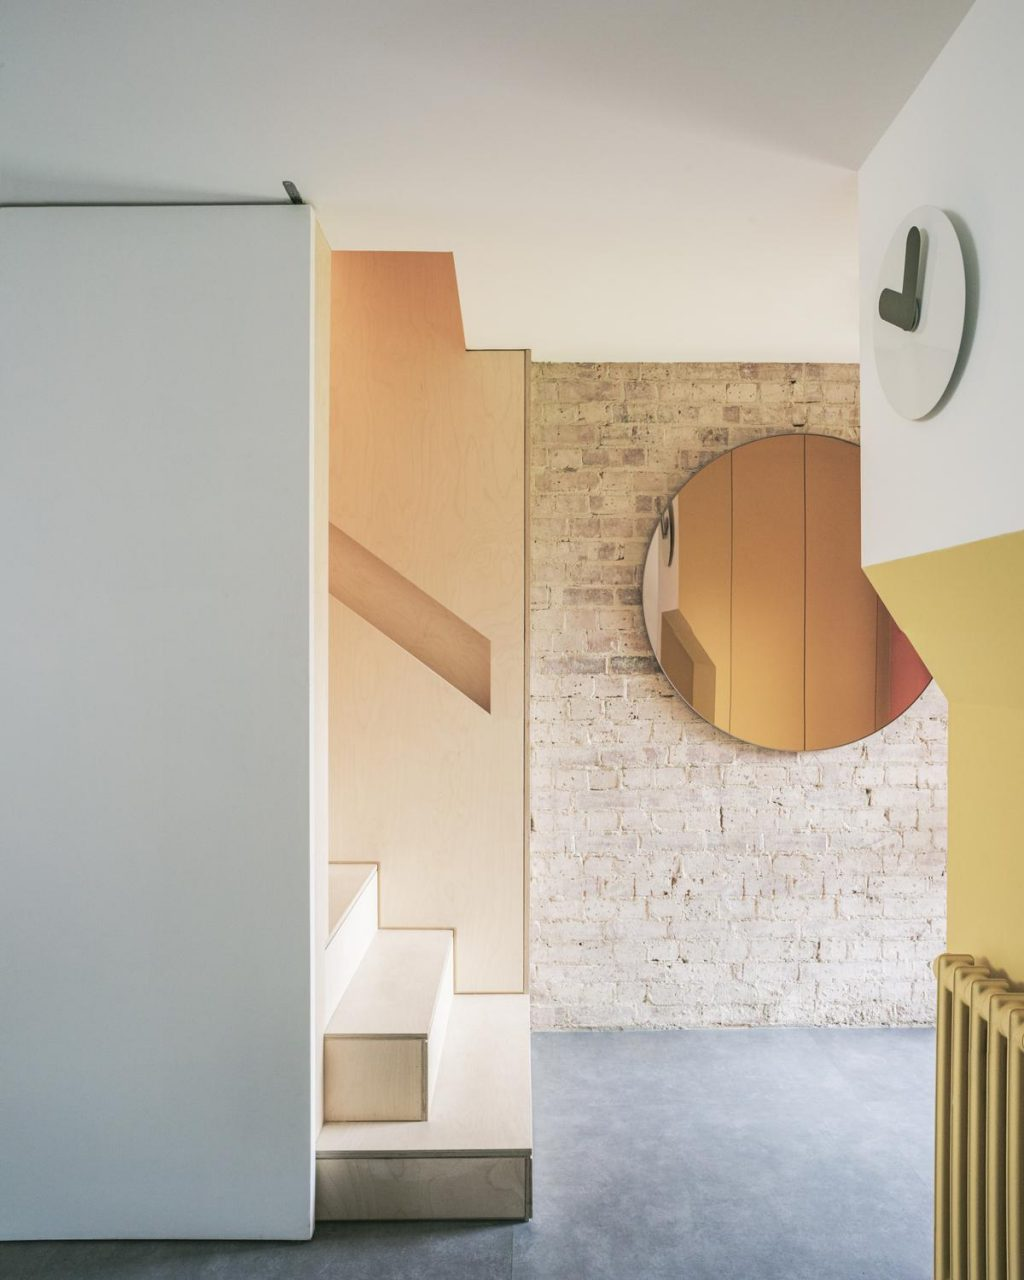 Reconfiguration of a Maisonette in London by Francesco Pierazzi Architects